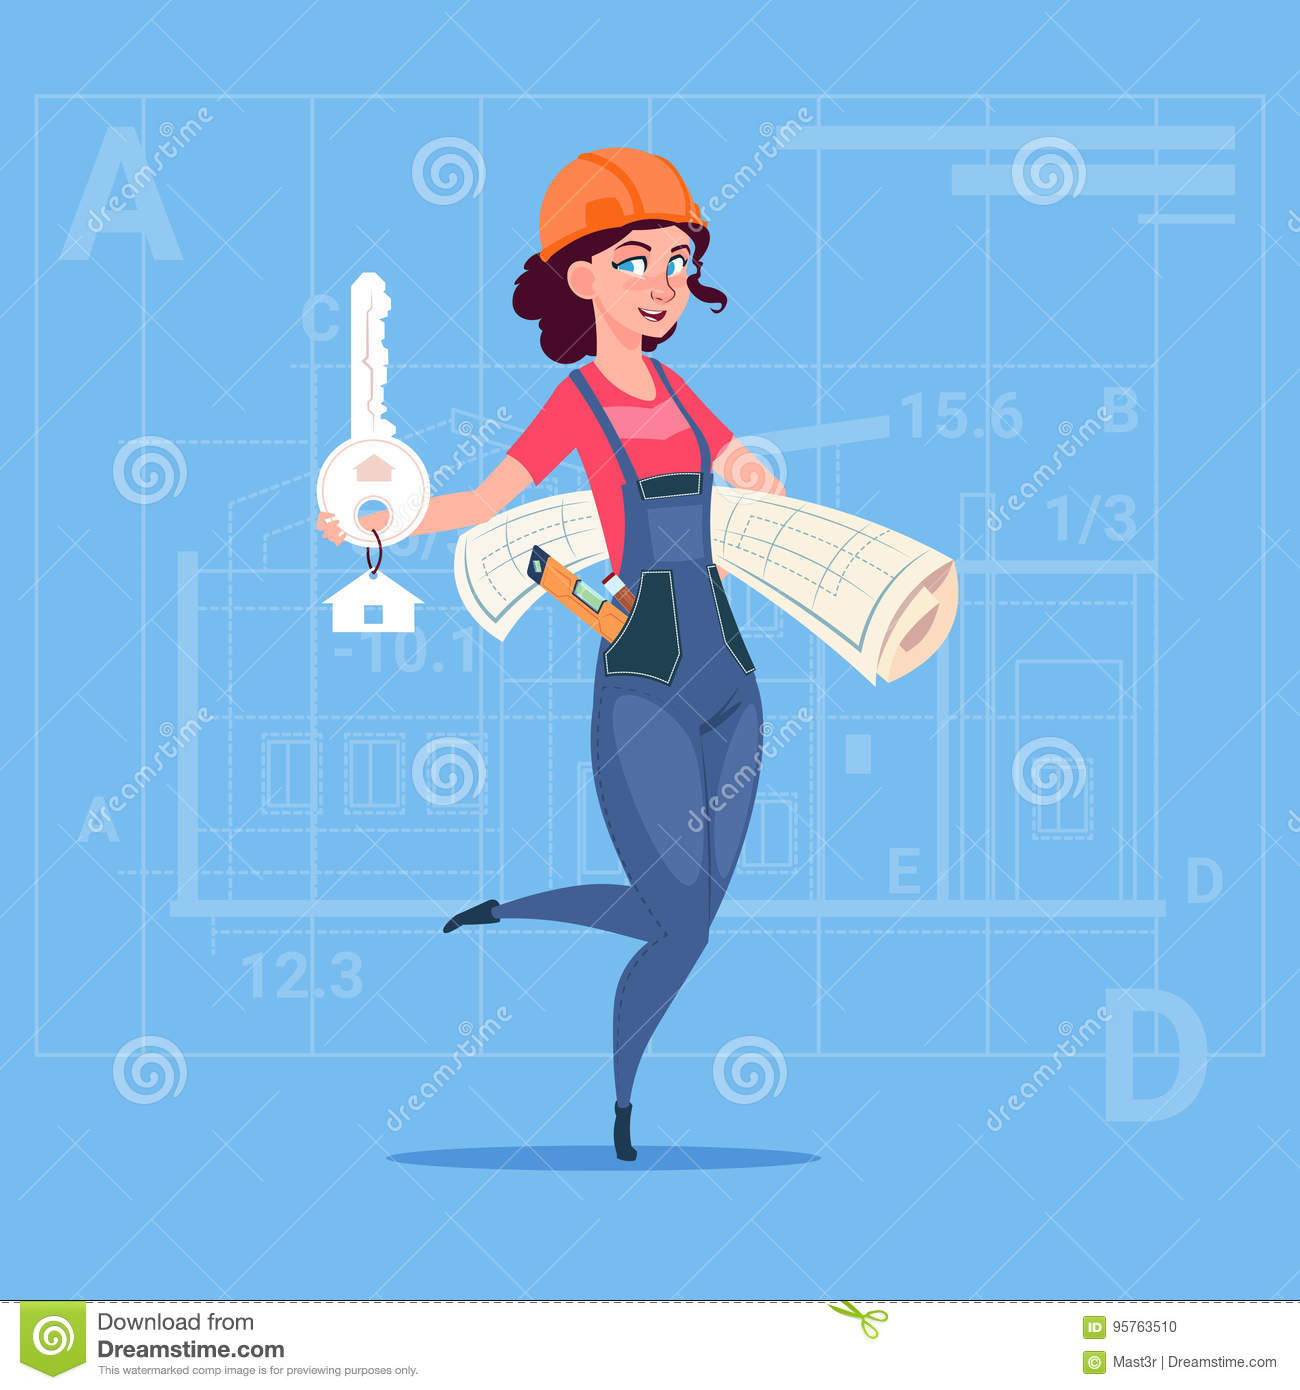 Cartoon Female Builder Holding Key From New House And Blueprint Over Abstract Plan Background